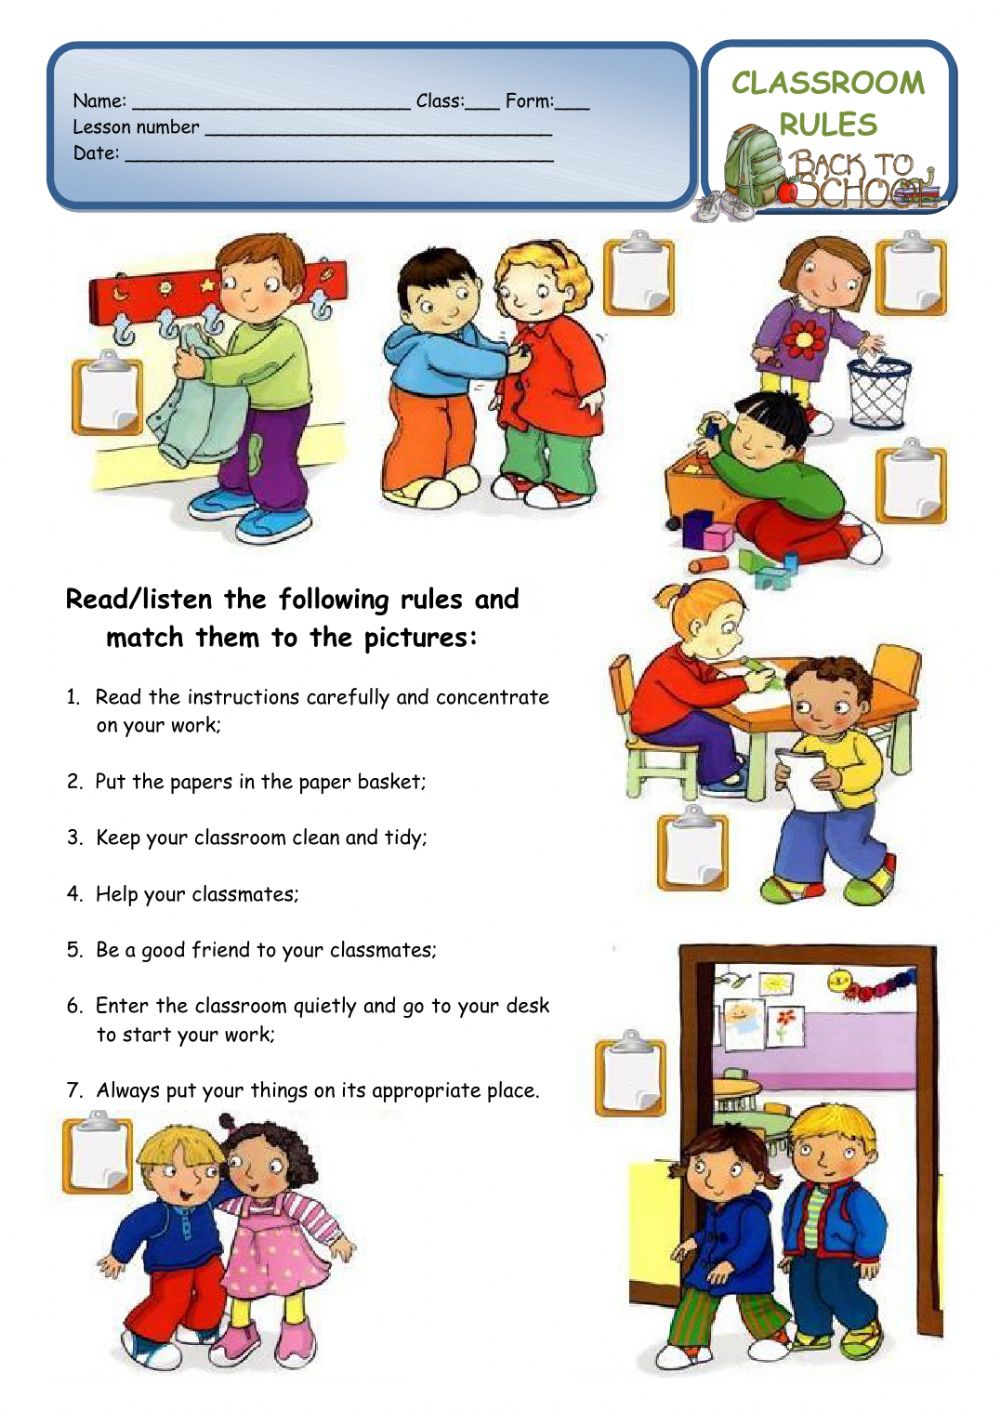 Worksheets Classroom Rules Worksheet classroom rules a back to school worksheet interactive worksheet